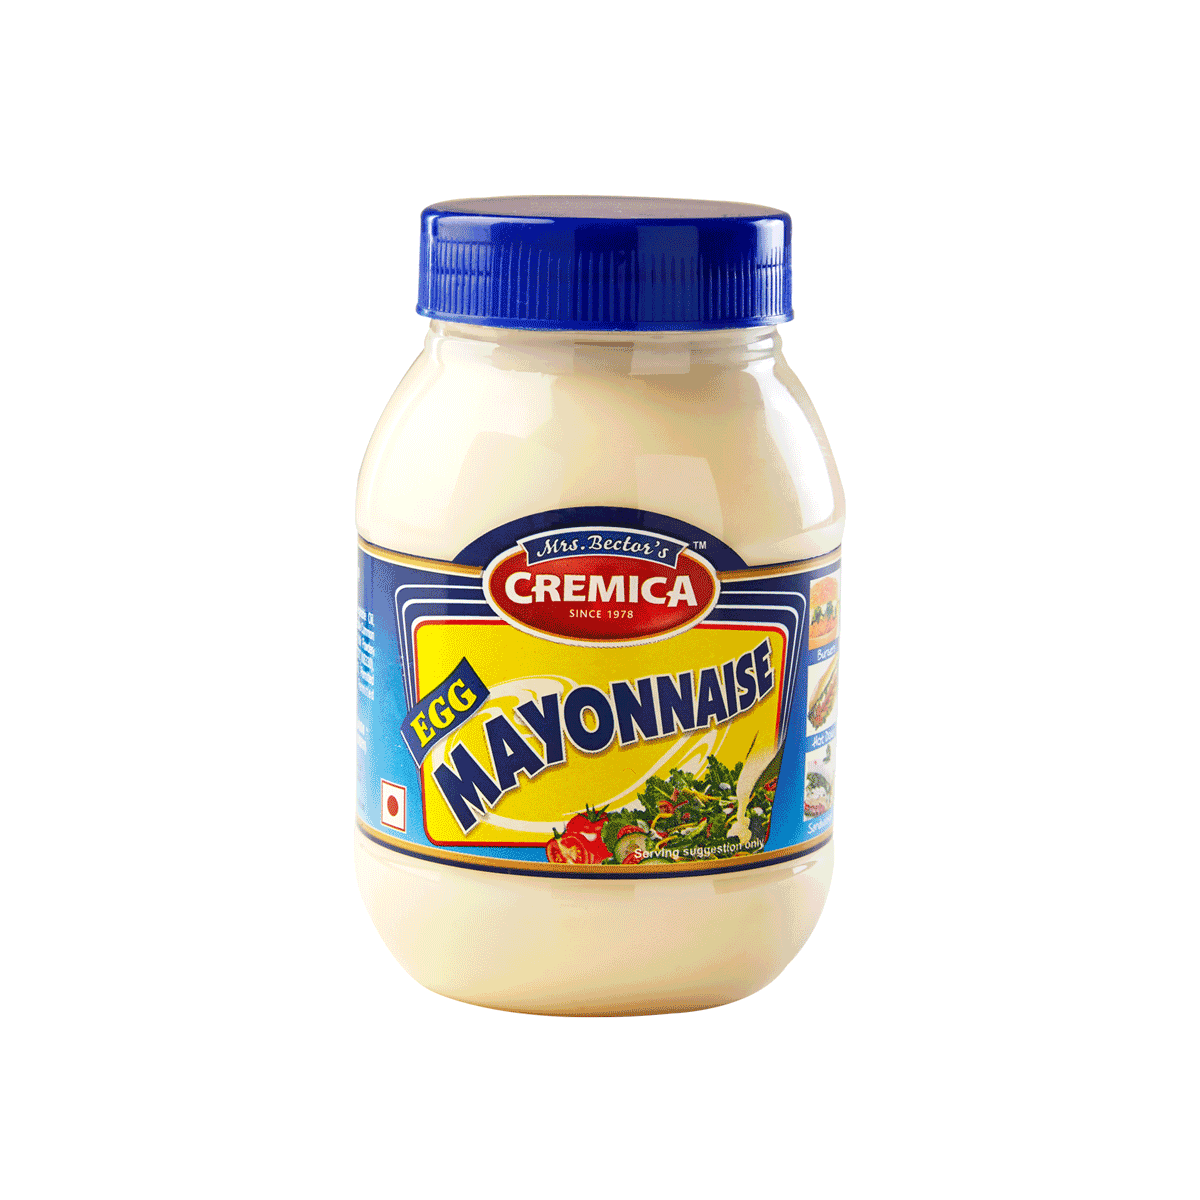 Mayonnaise Archives - Cremica